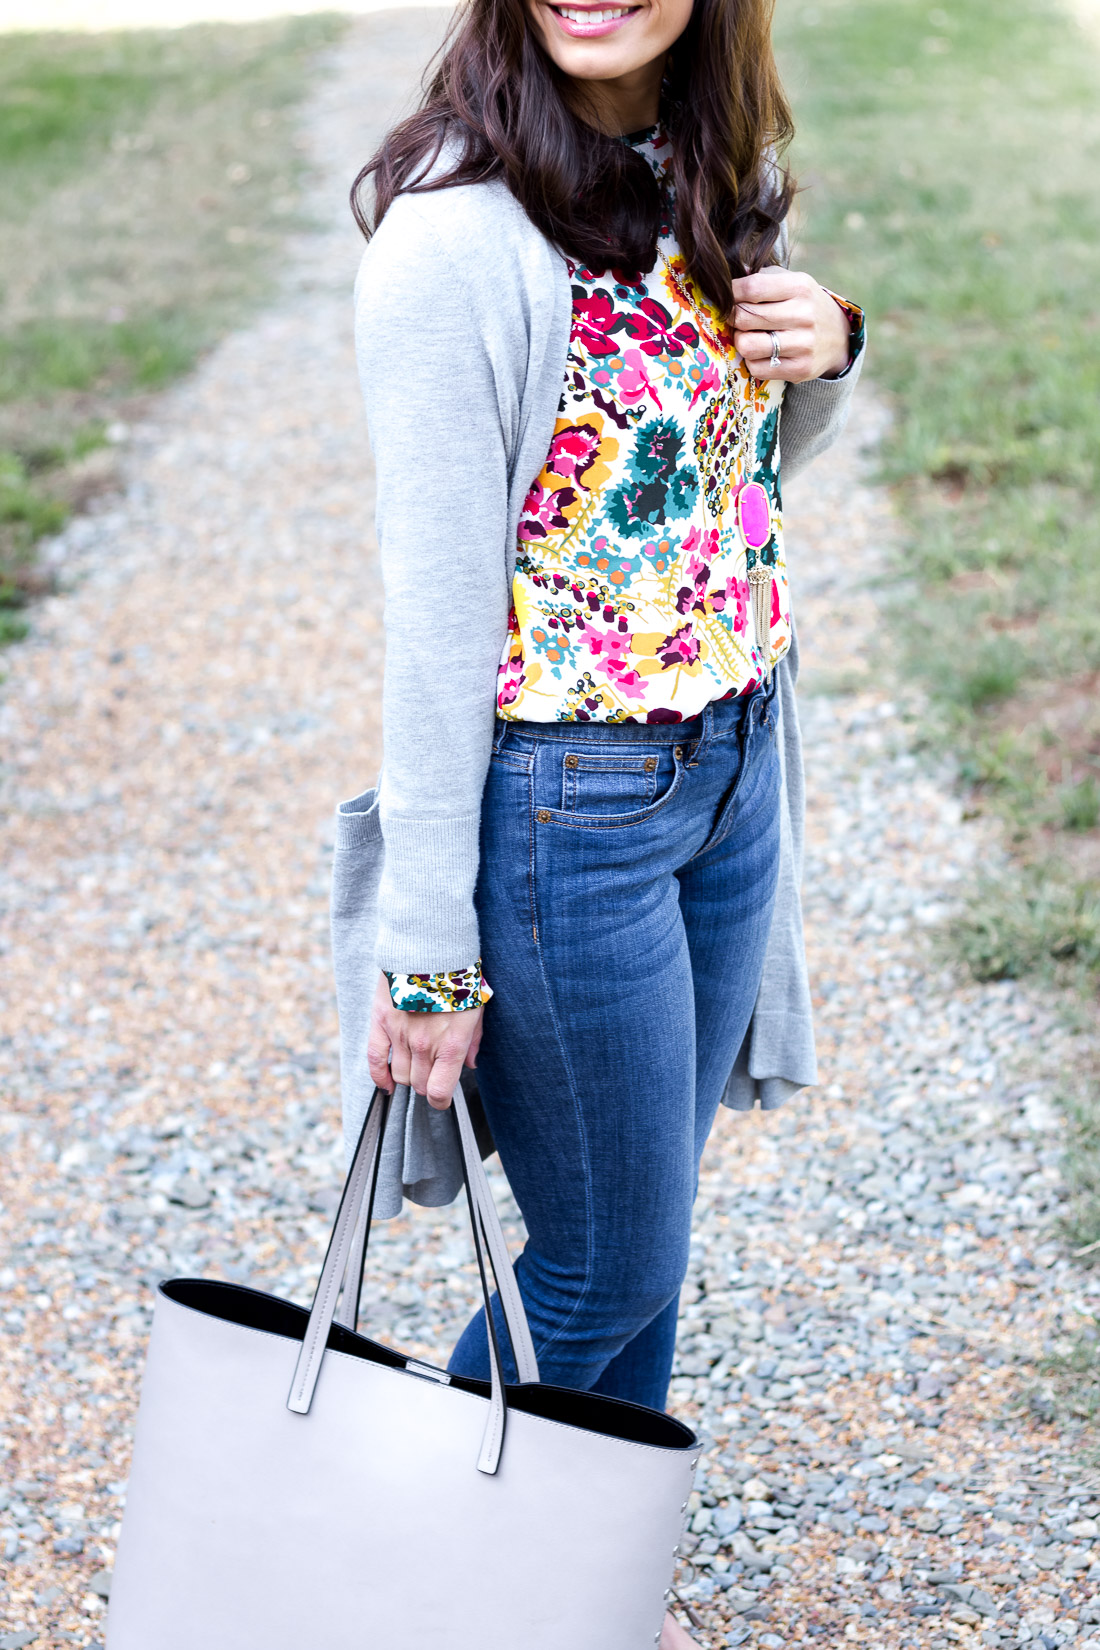 What Makes You Feel Confident - Casual Style Outfit